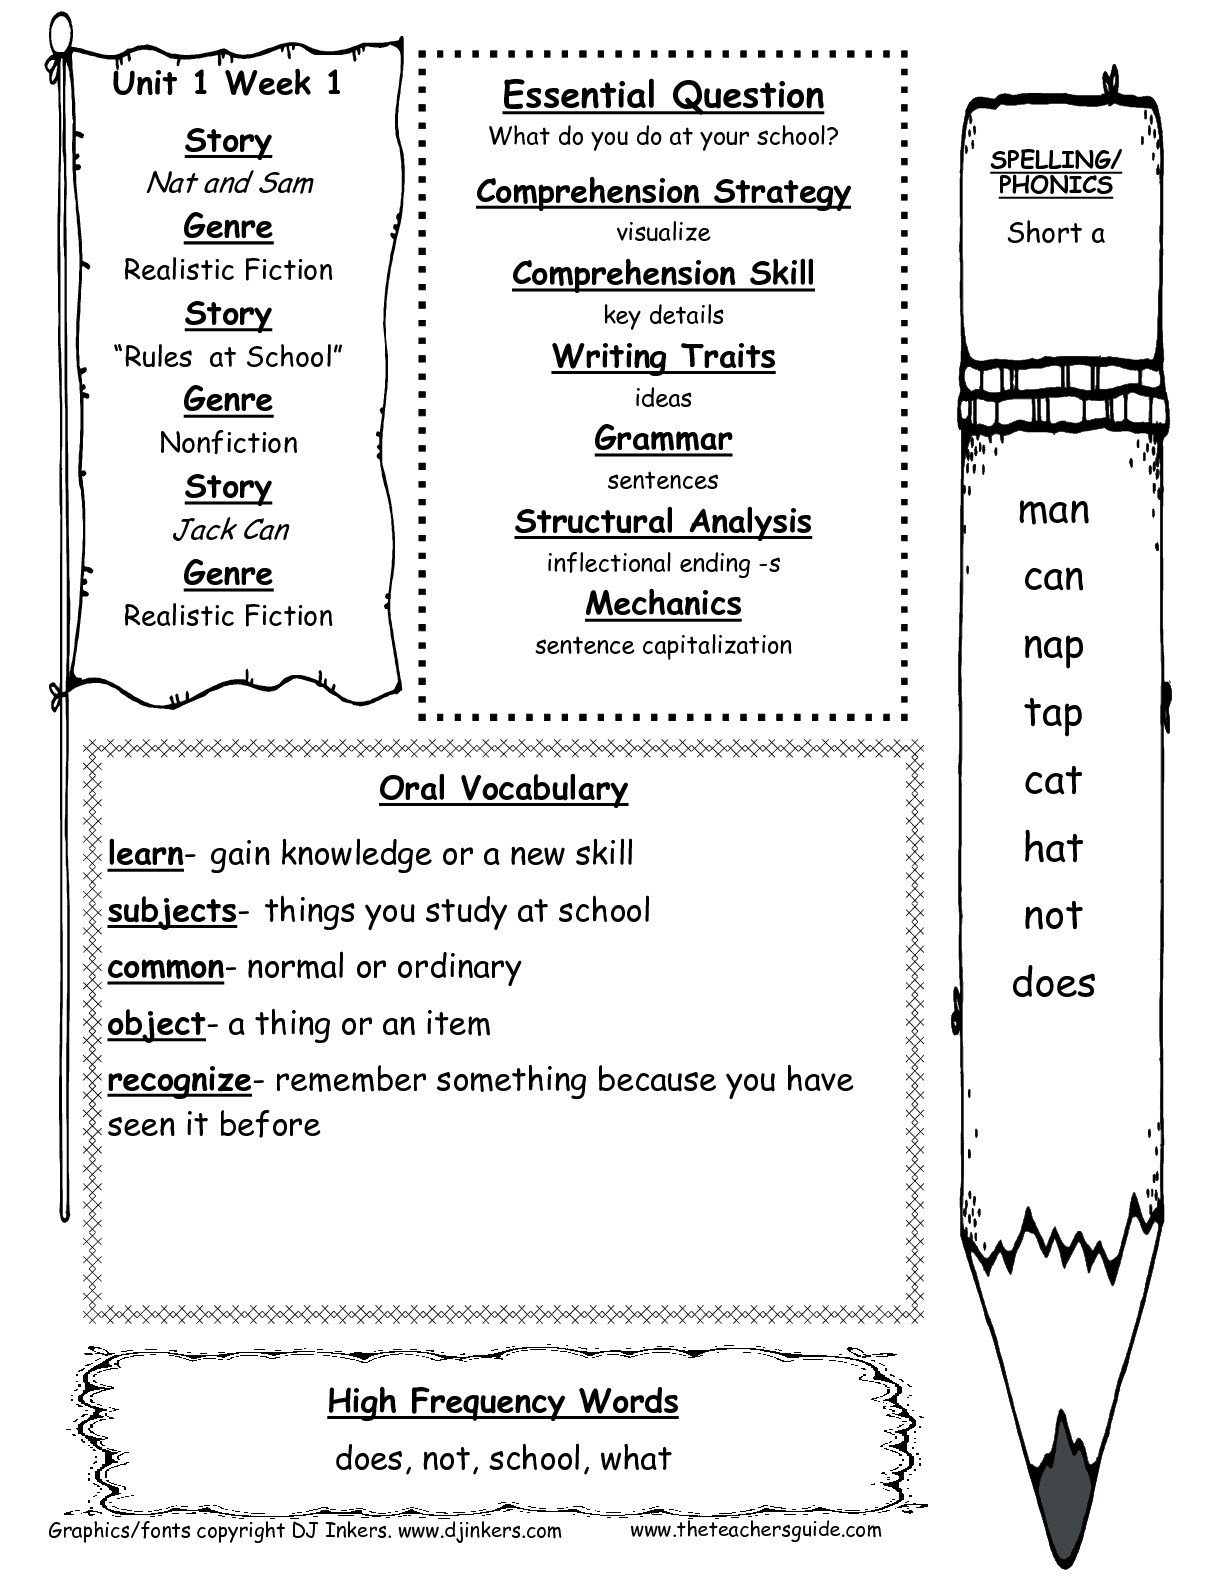 Mcgraw-Hill Wonders First Grade Resources And Printouts - Free Printable Language Arts Worksheets For 1St Grade